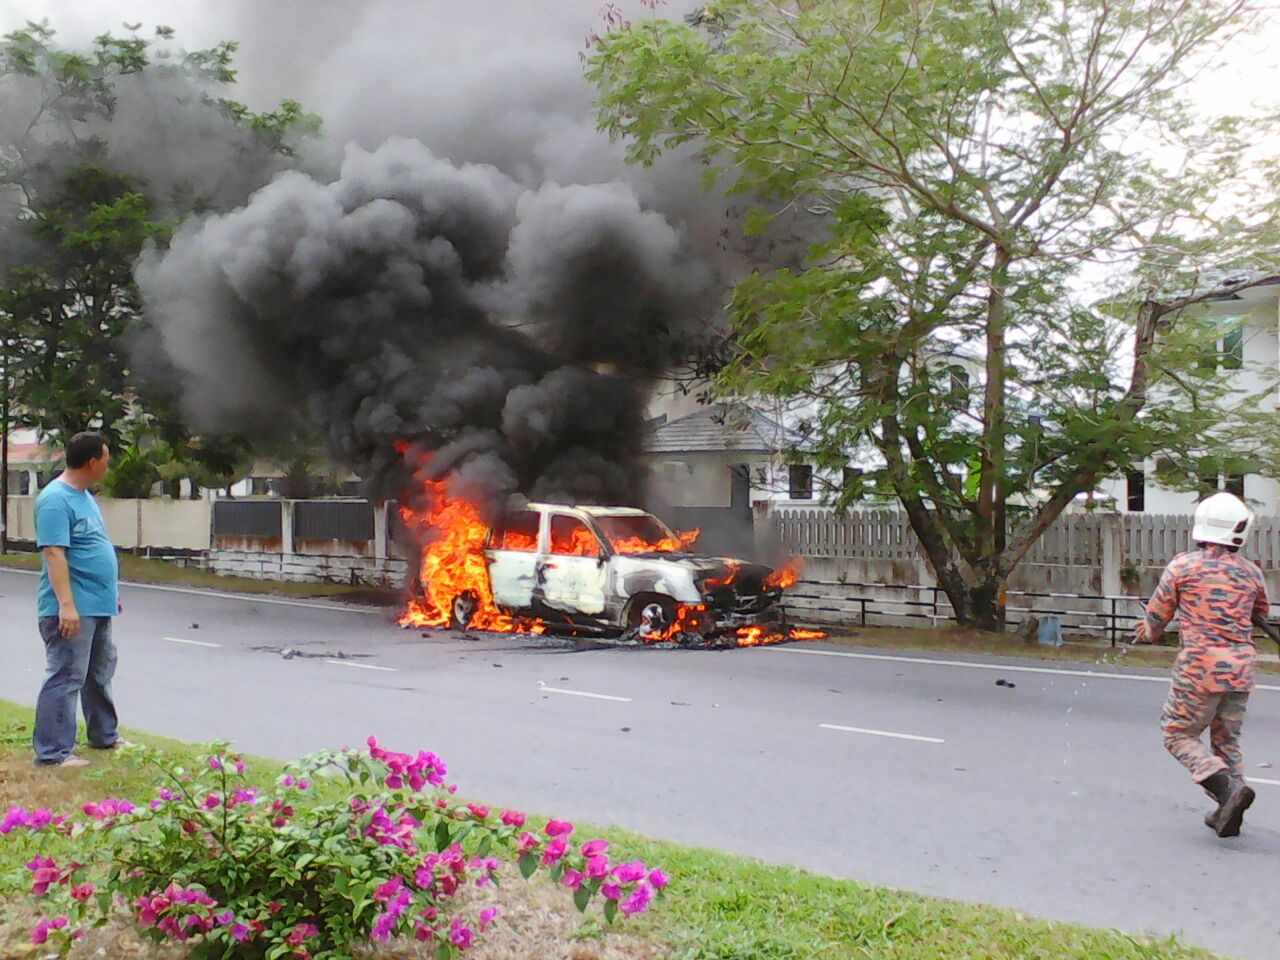 The car is seen ablaze at the roadside.